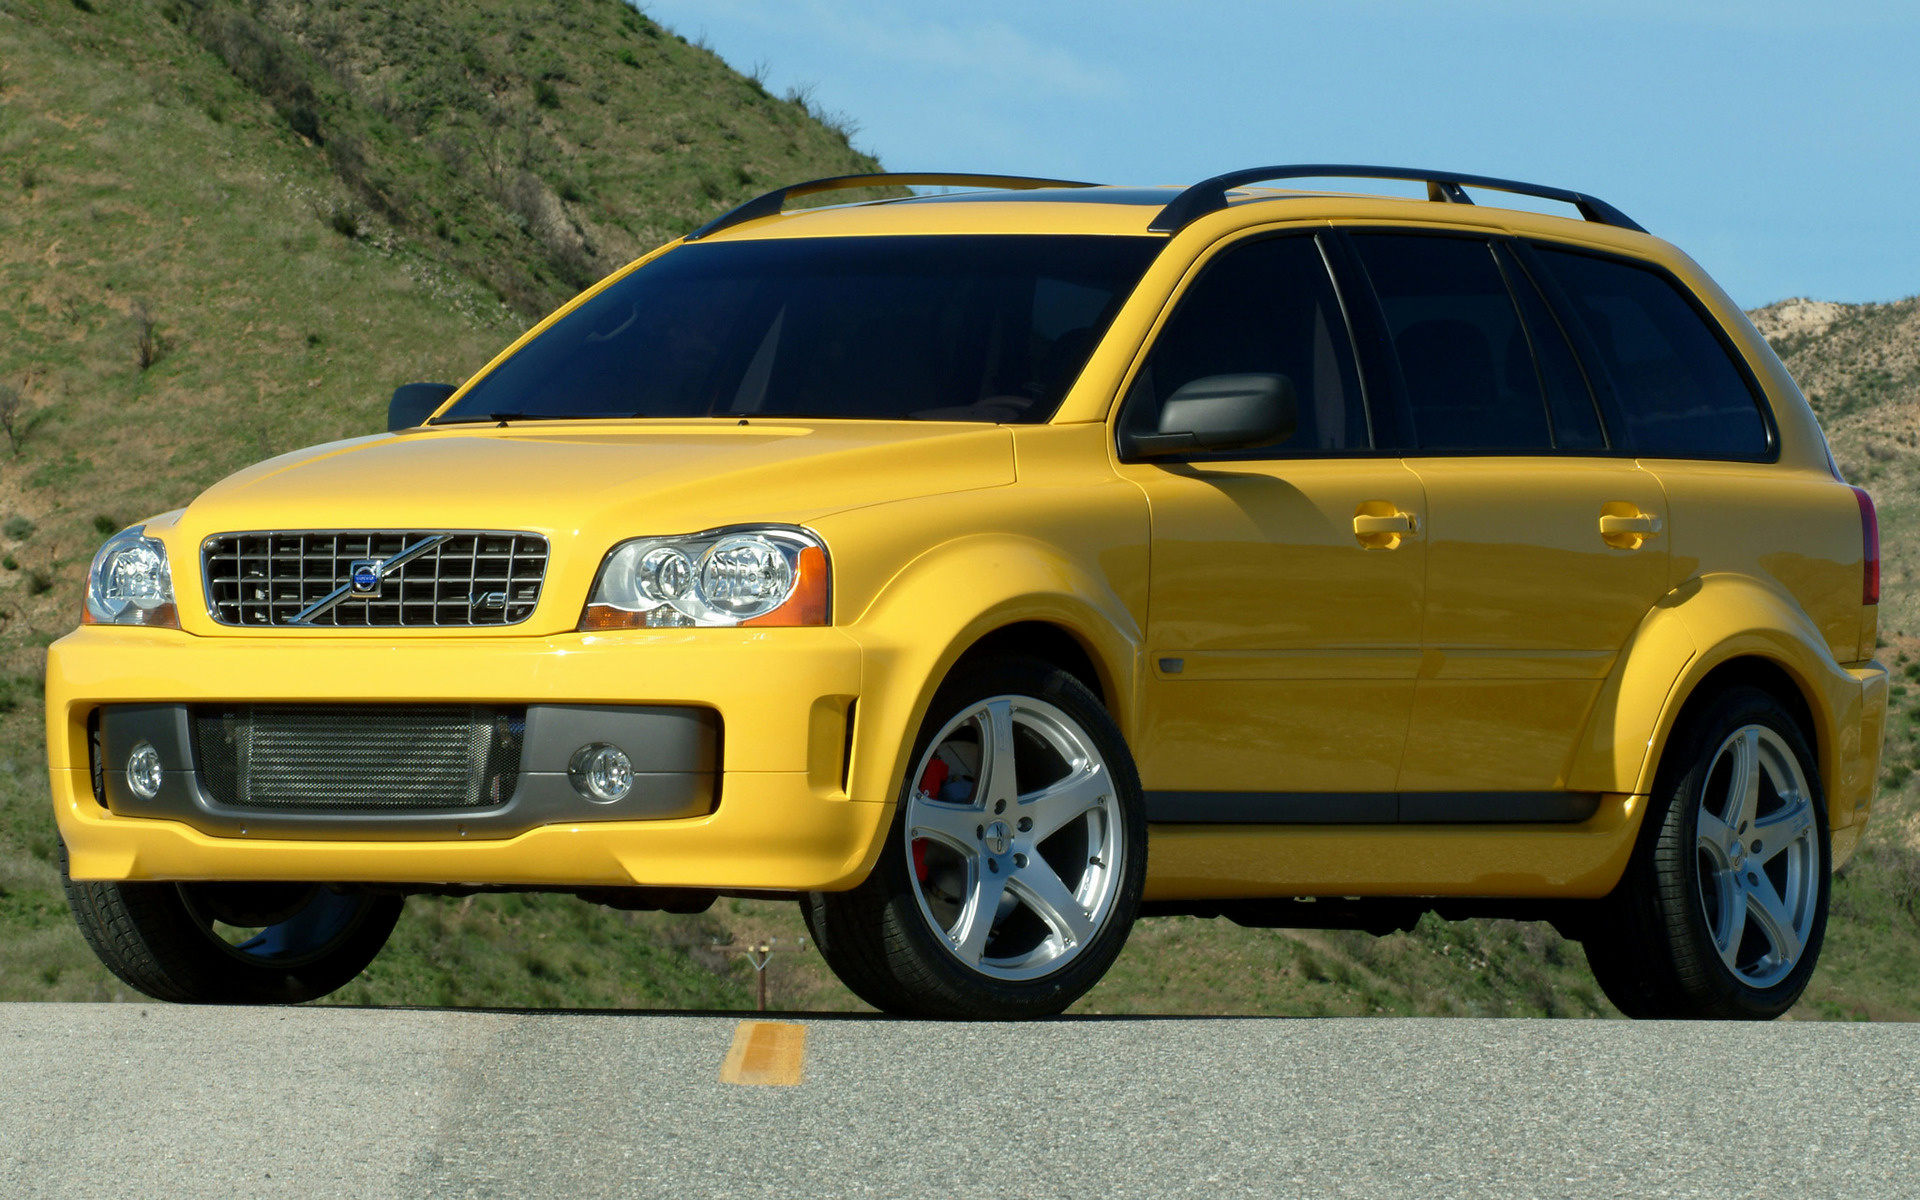 2005 Volvo XC90 Supercharged V8 - Wallpapers and HD Images ...